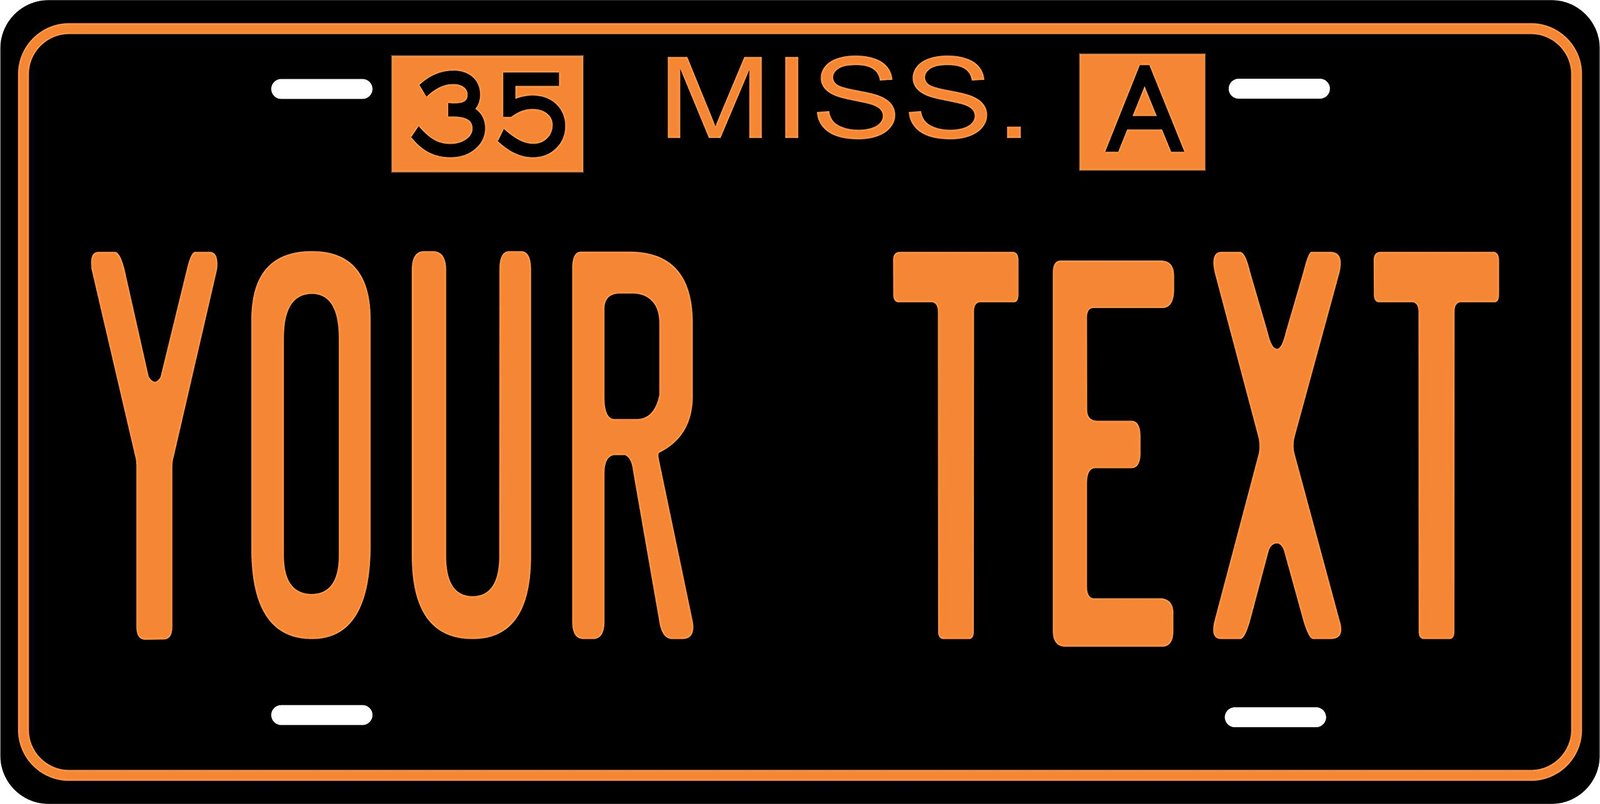 Mississippi 1935 Personalized Tag Vehicle Car Auto License Plate